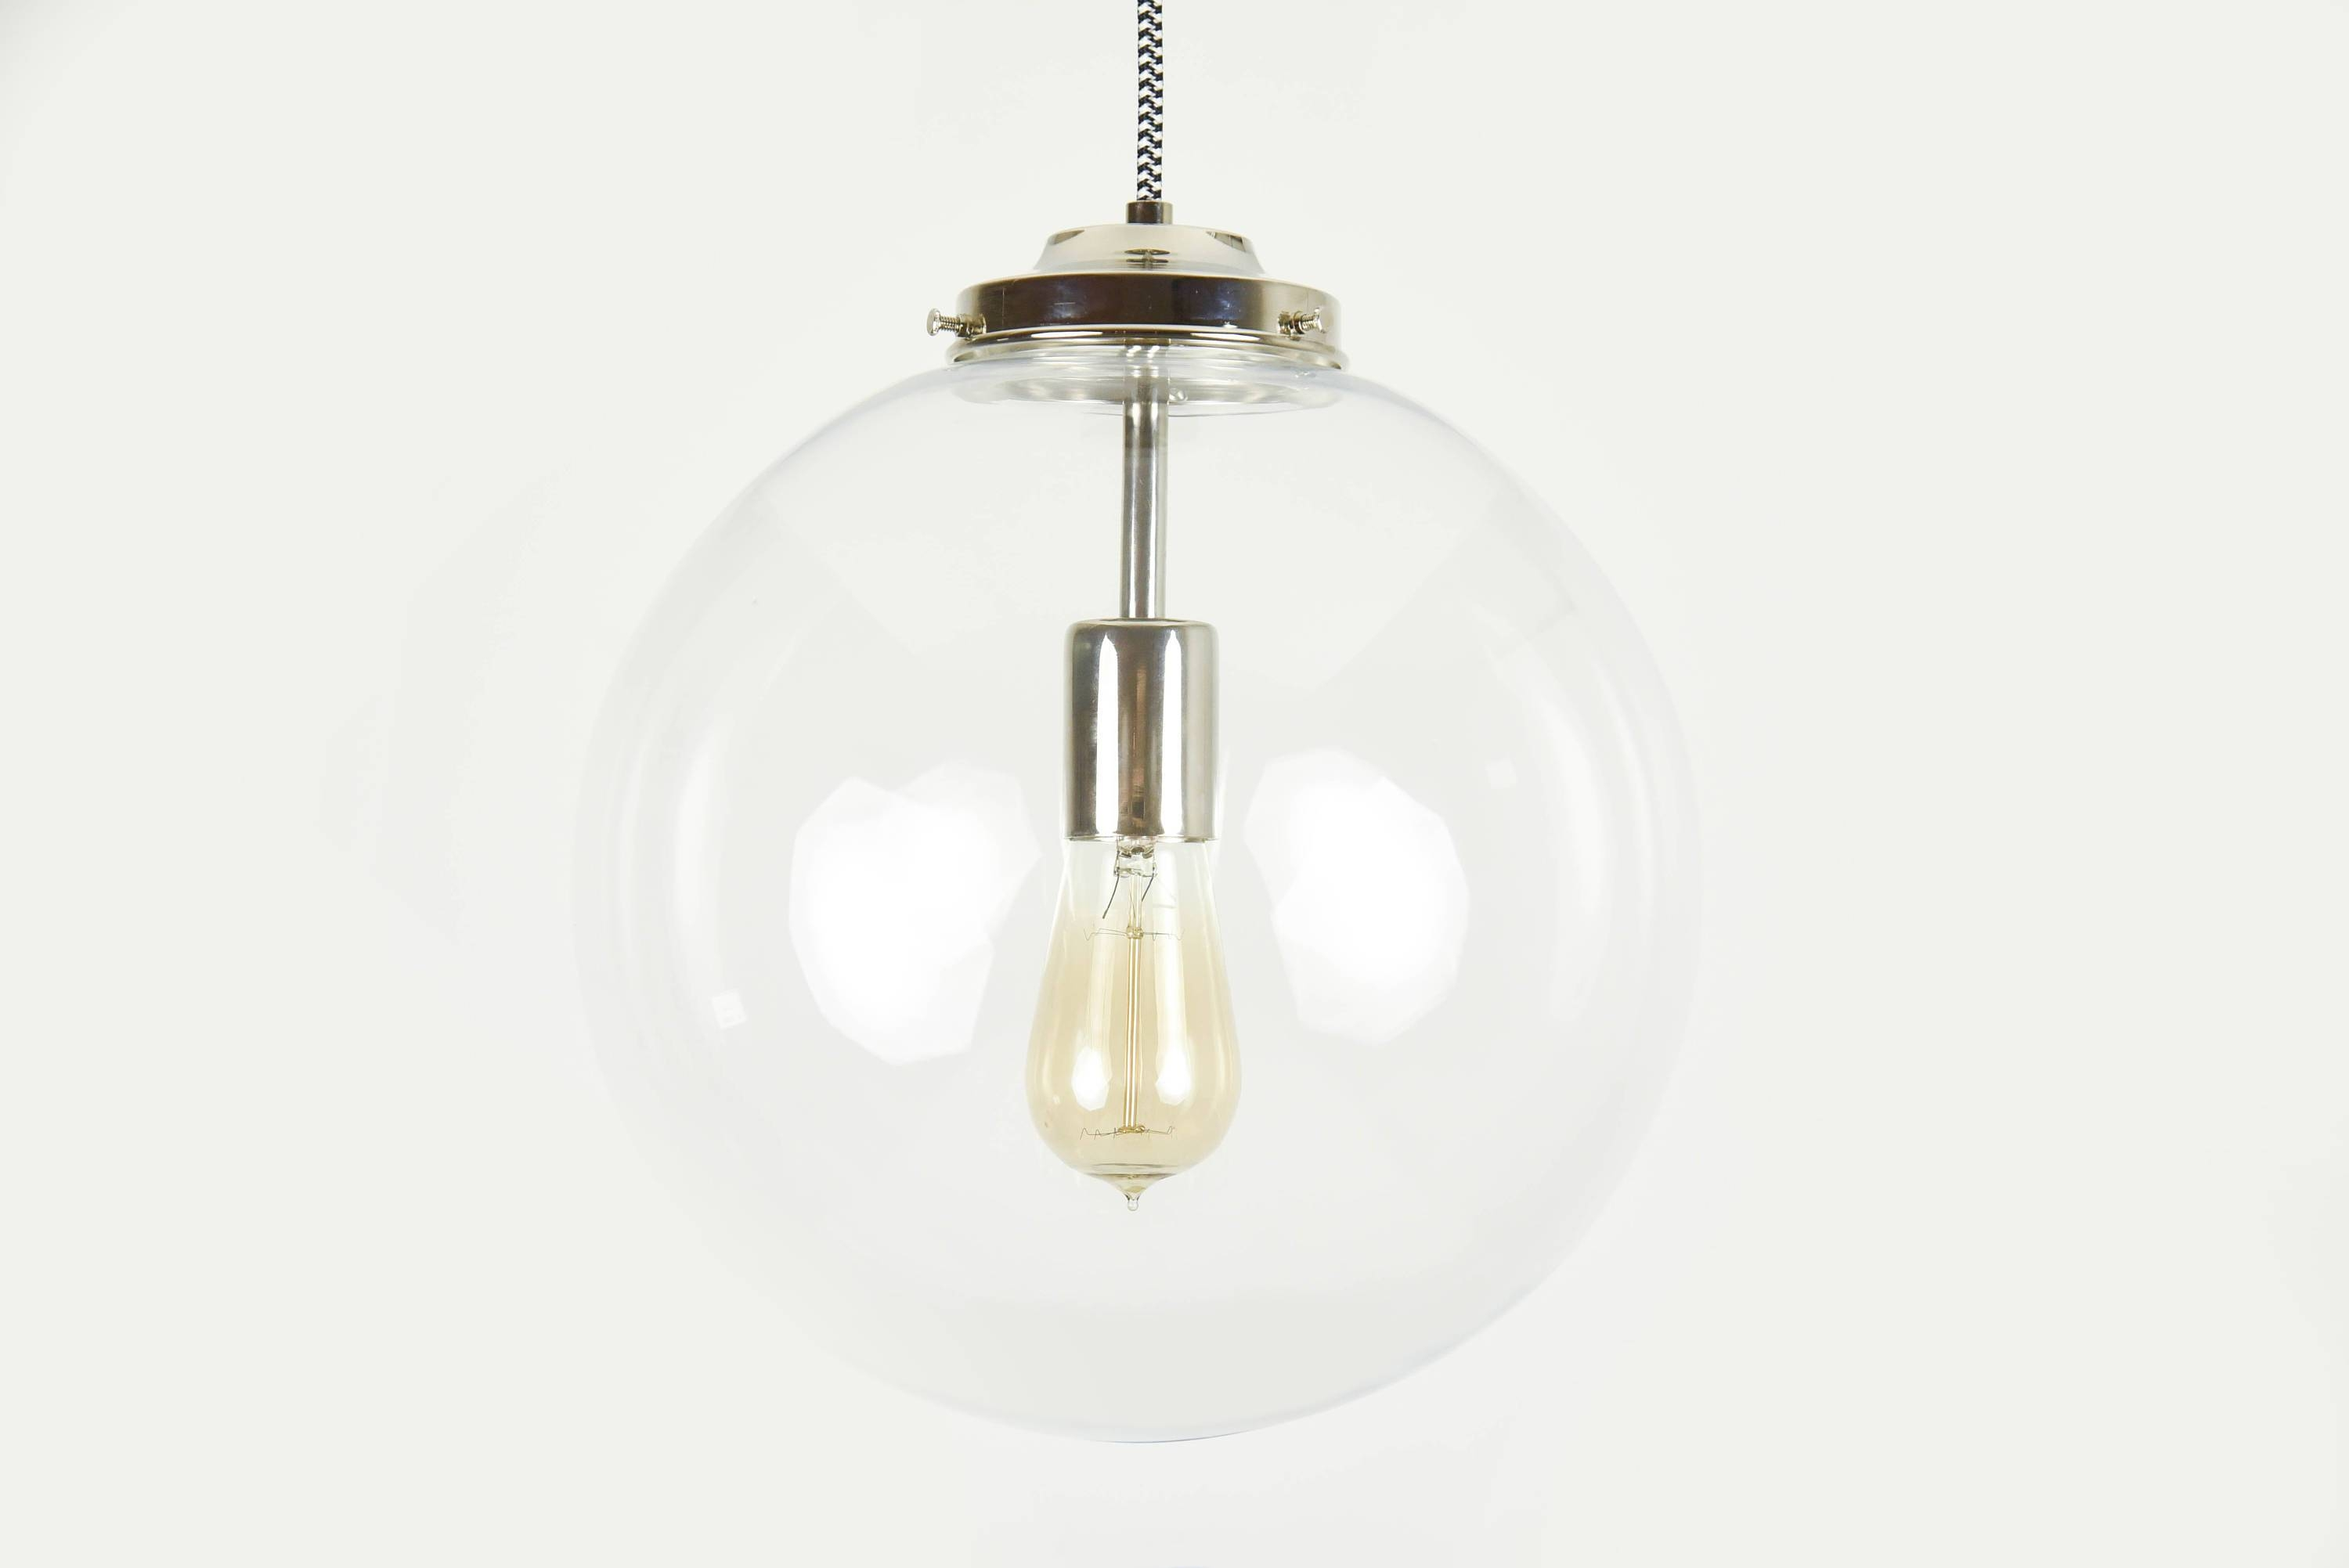 Lamp : Light Dining Glass Hanging Light Fixtures Red Pendant inside Round Glass Pendant Lights (Image 8 of 15)